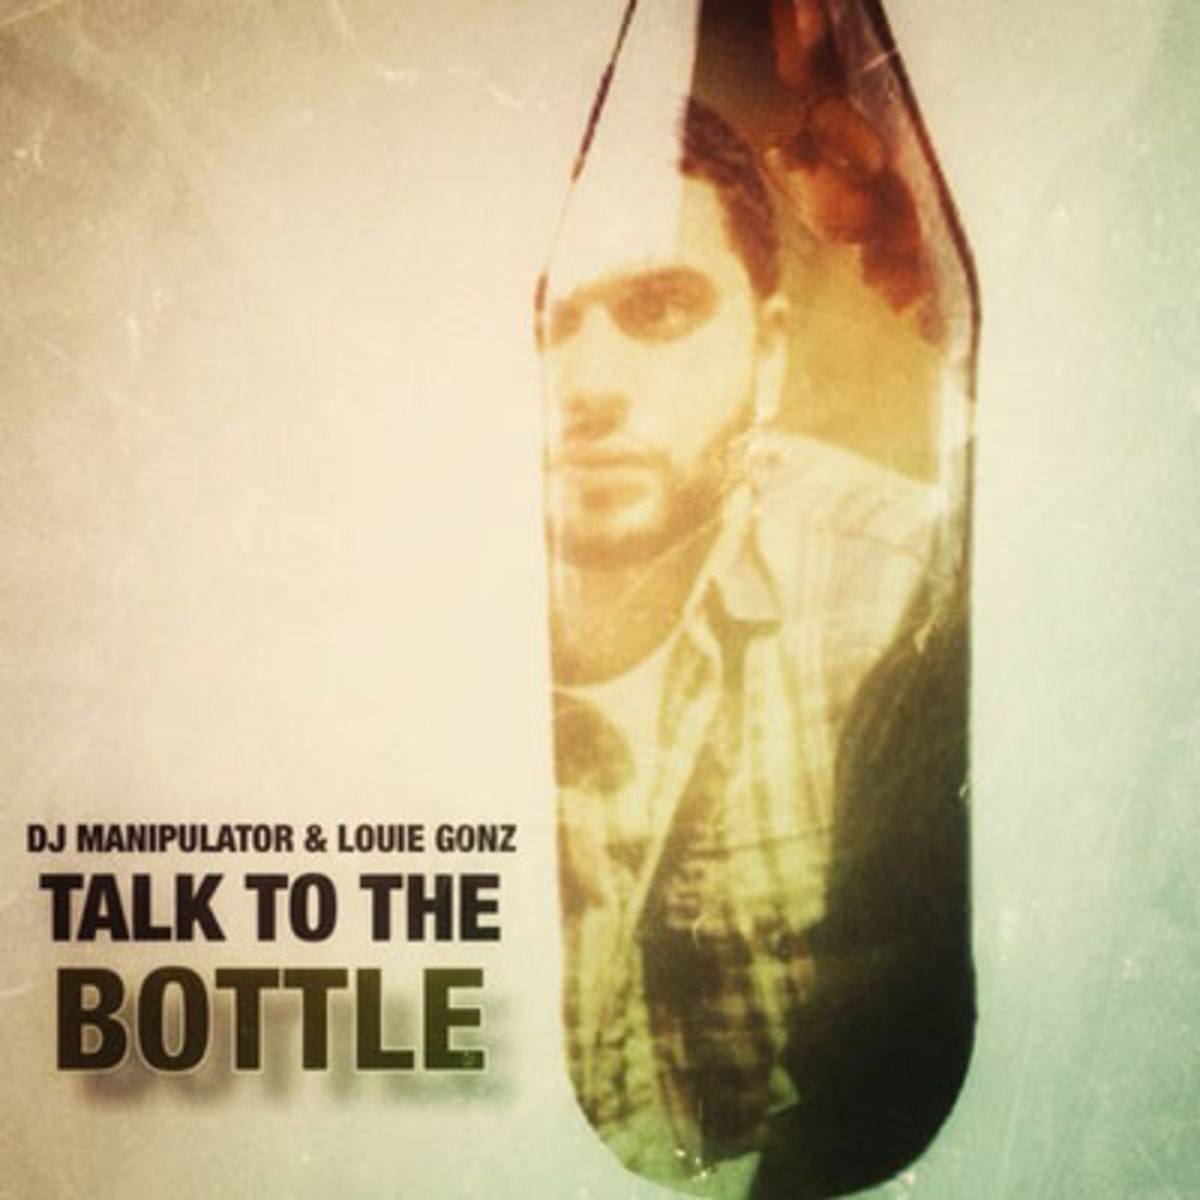 louiegonz-talkbottle.jpg